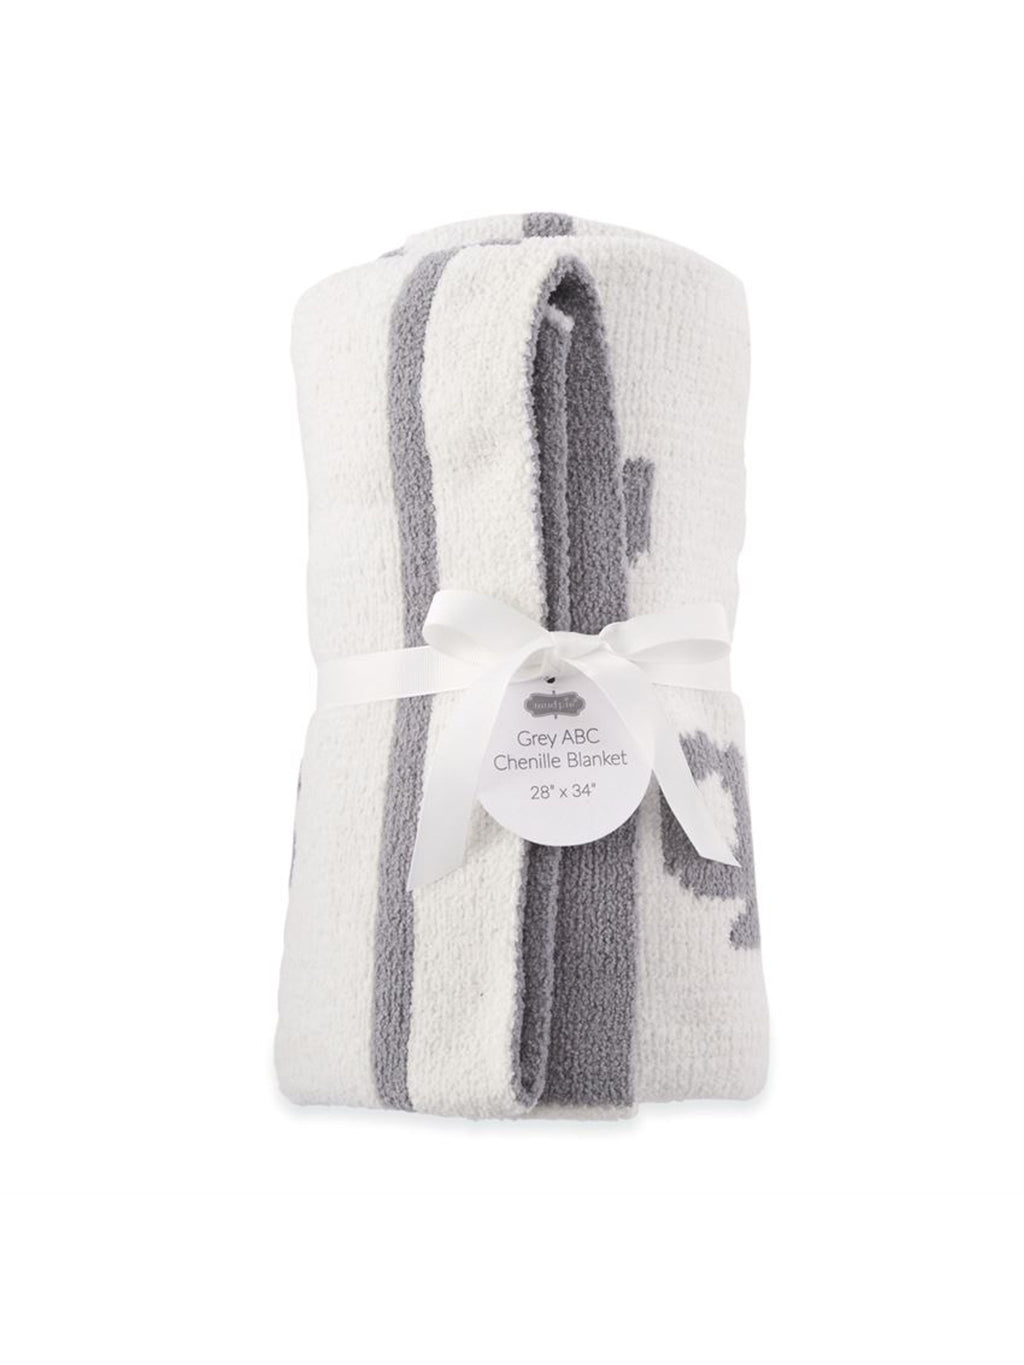 Grey ABC Chenille Blanket